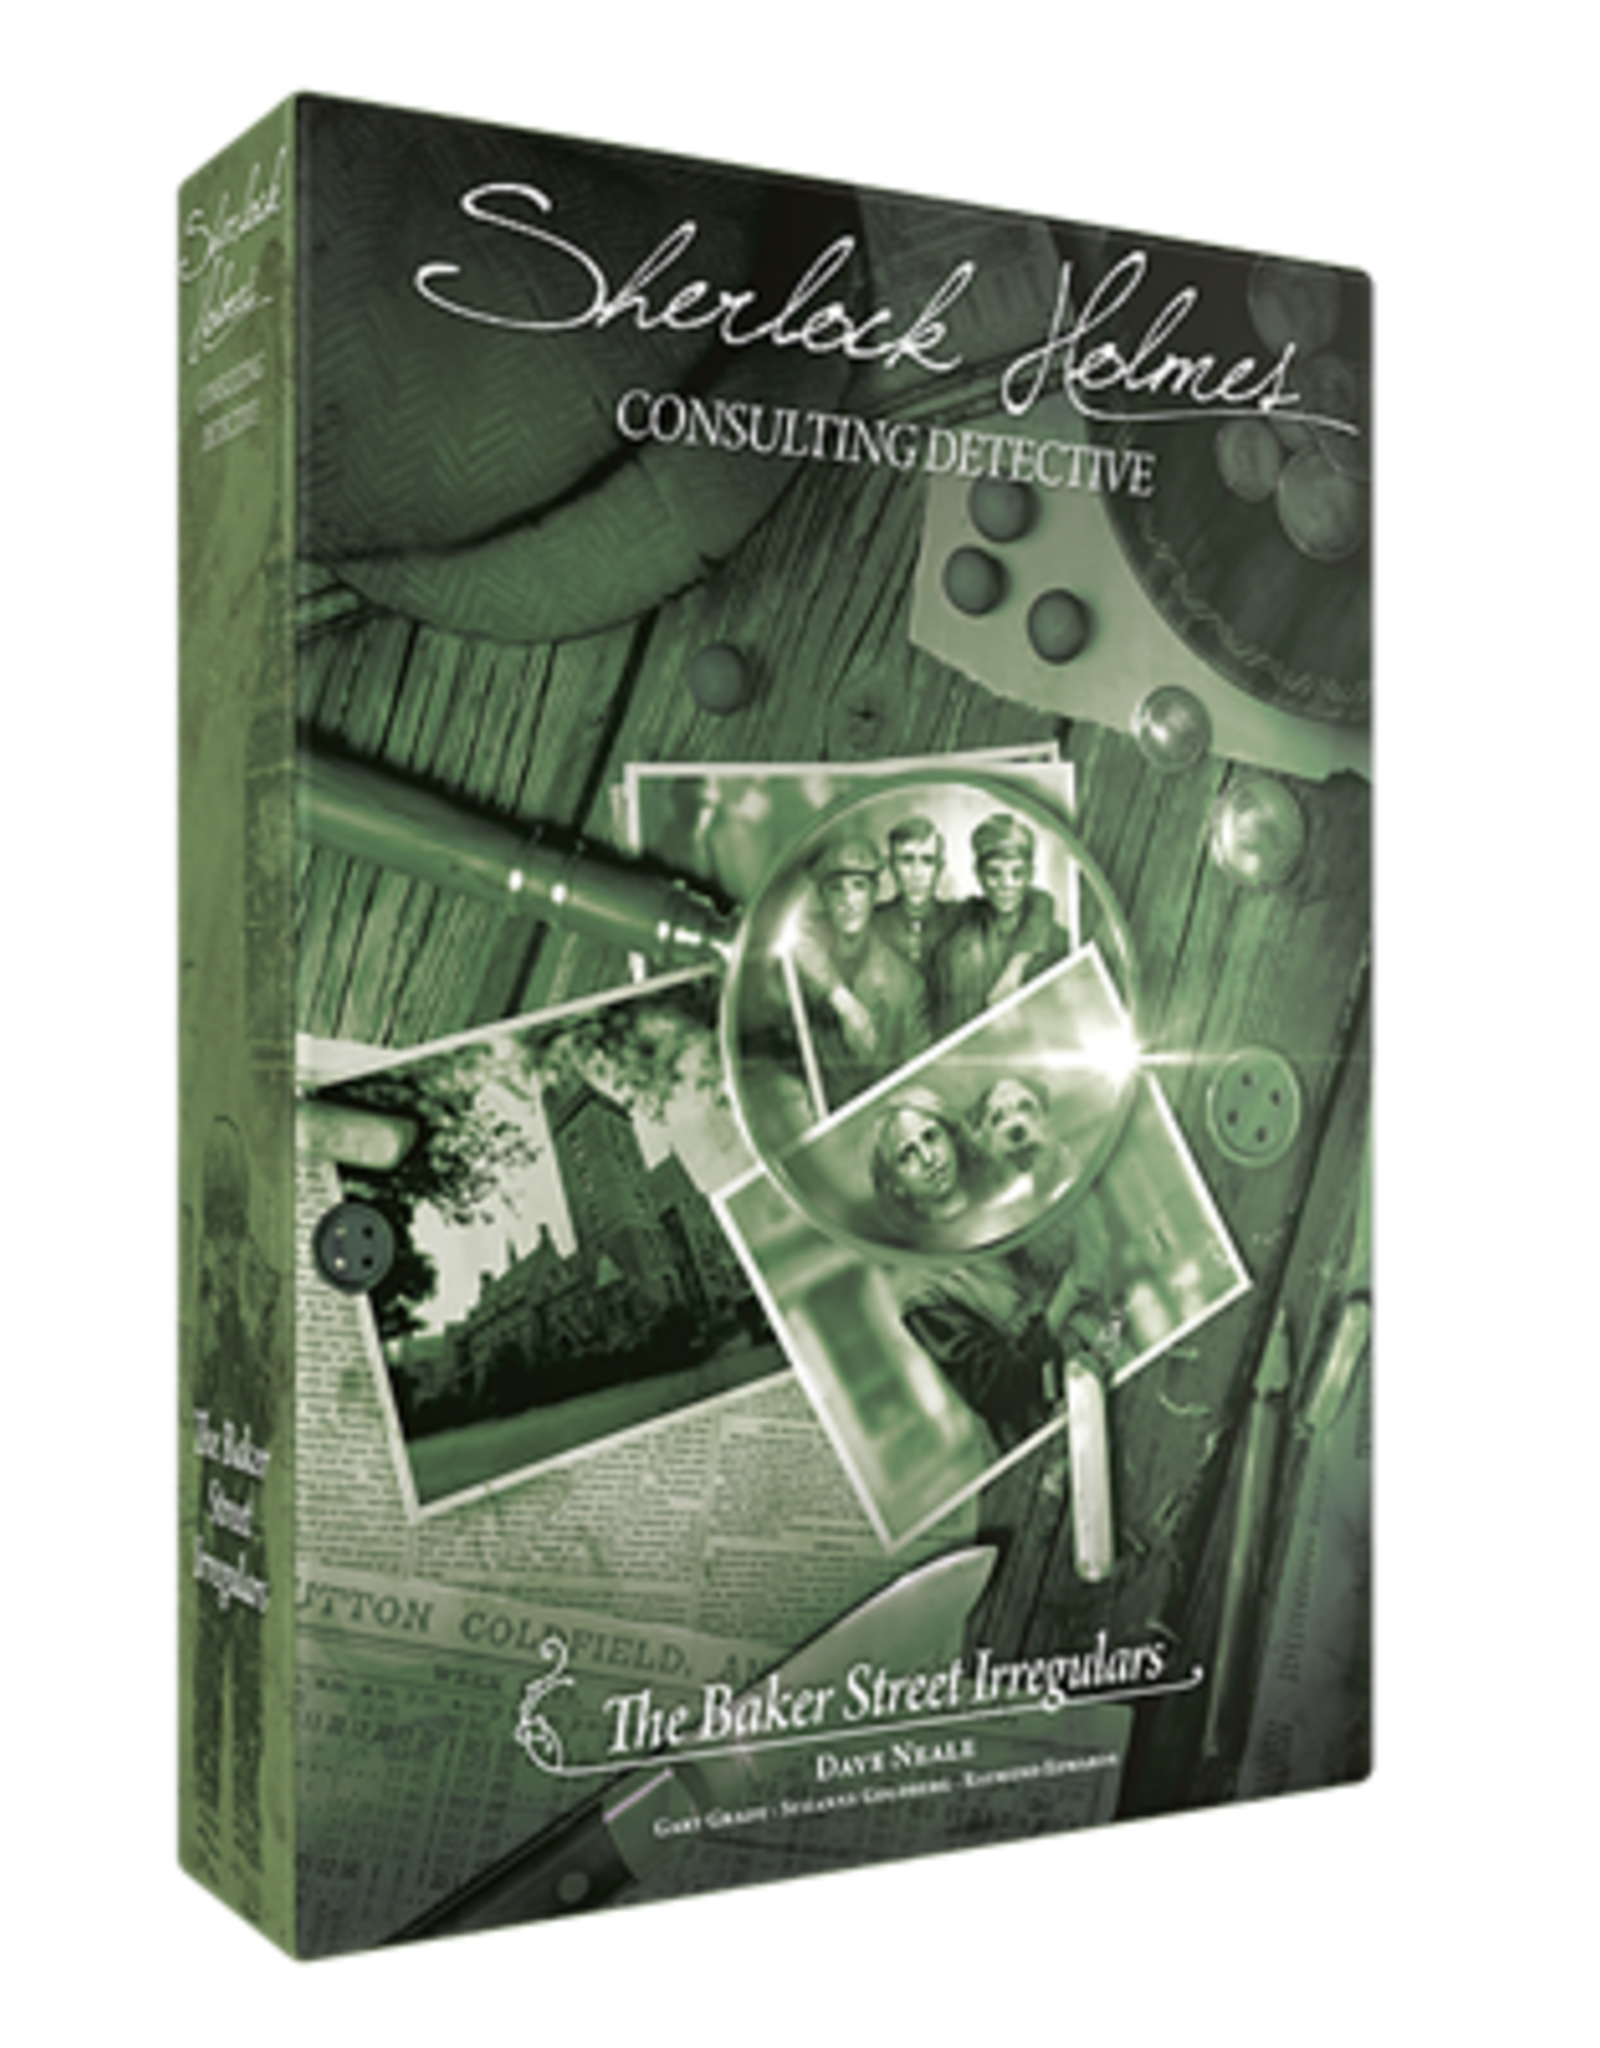 Space Cowboys Sherlock Holmes Consulting Detective, The Baker Street Irregulars